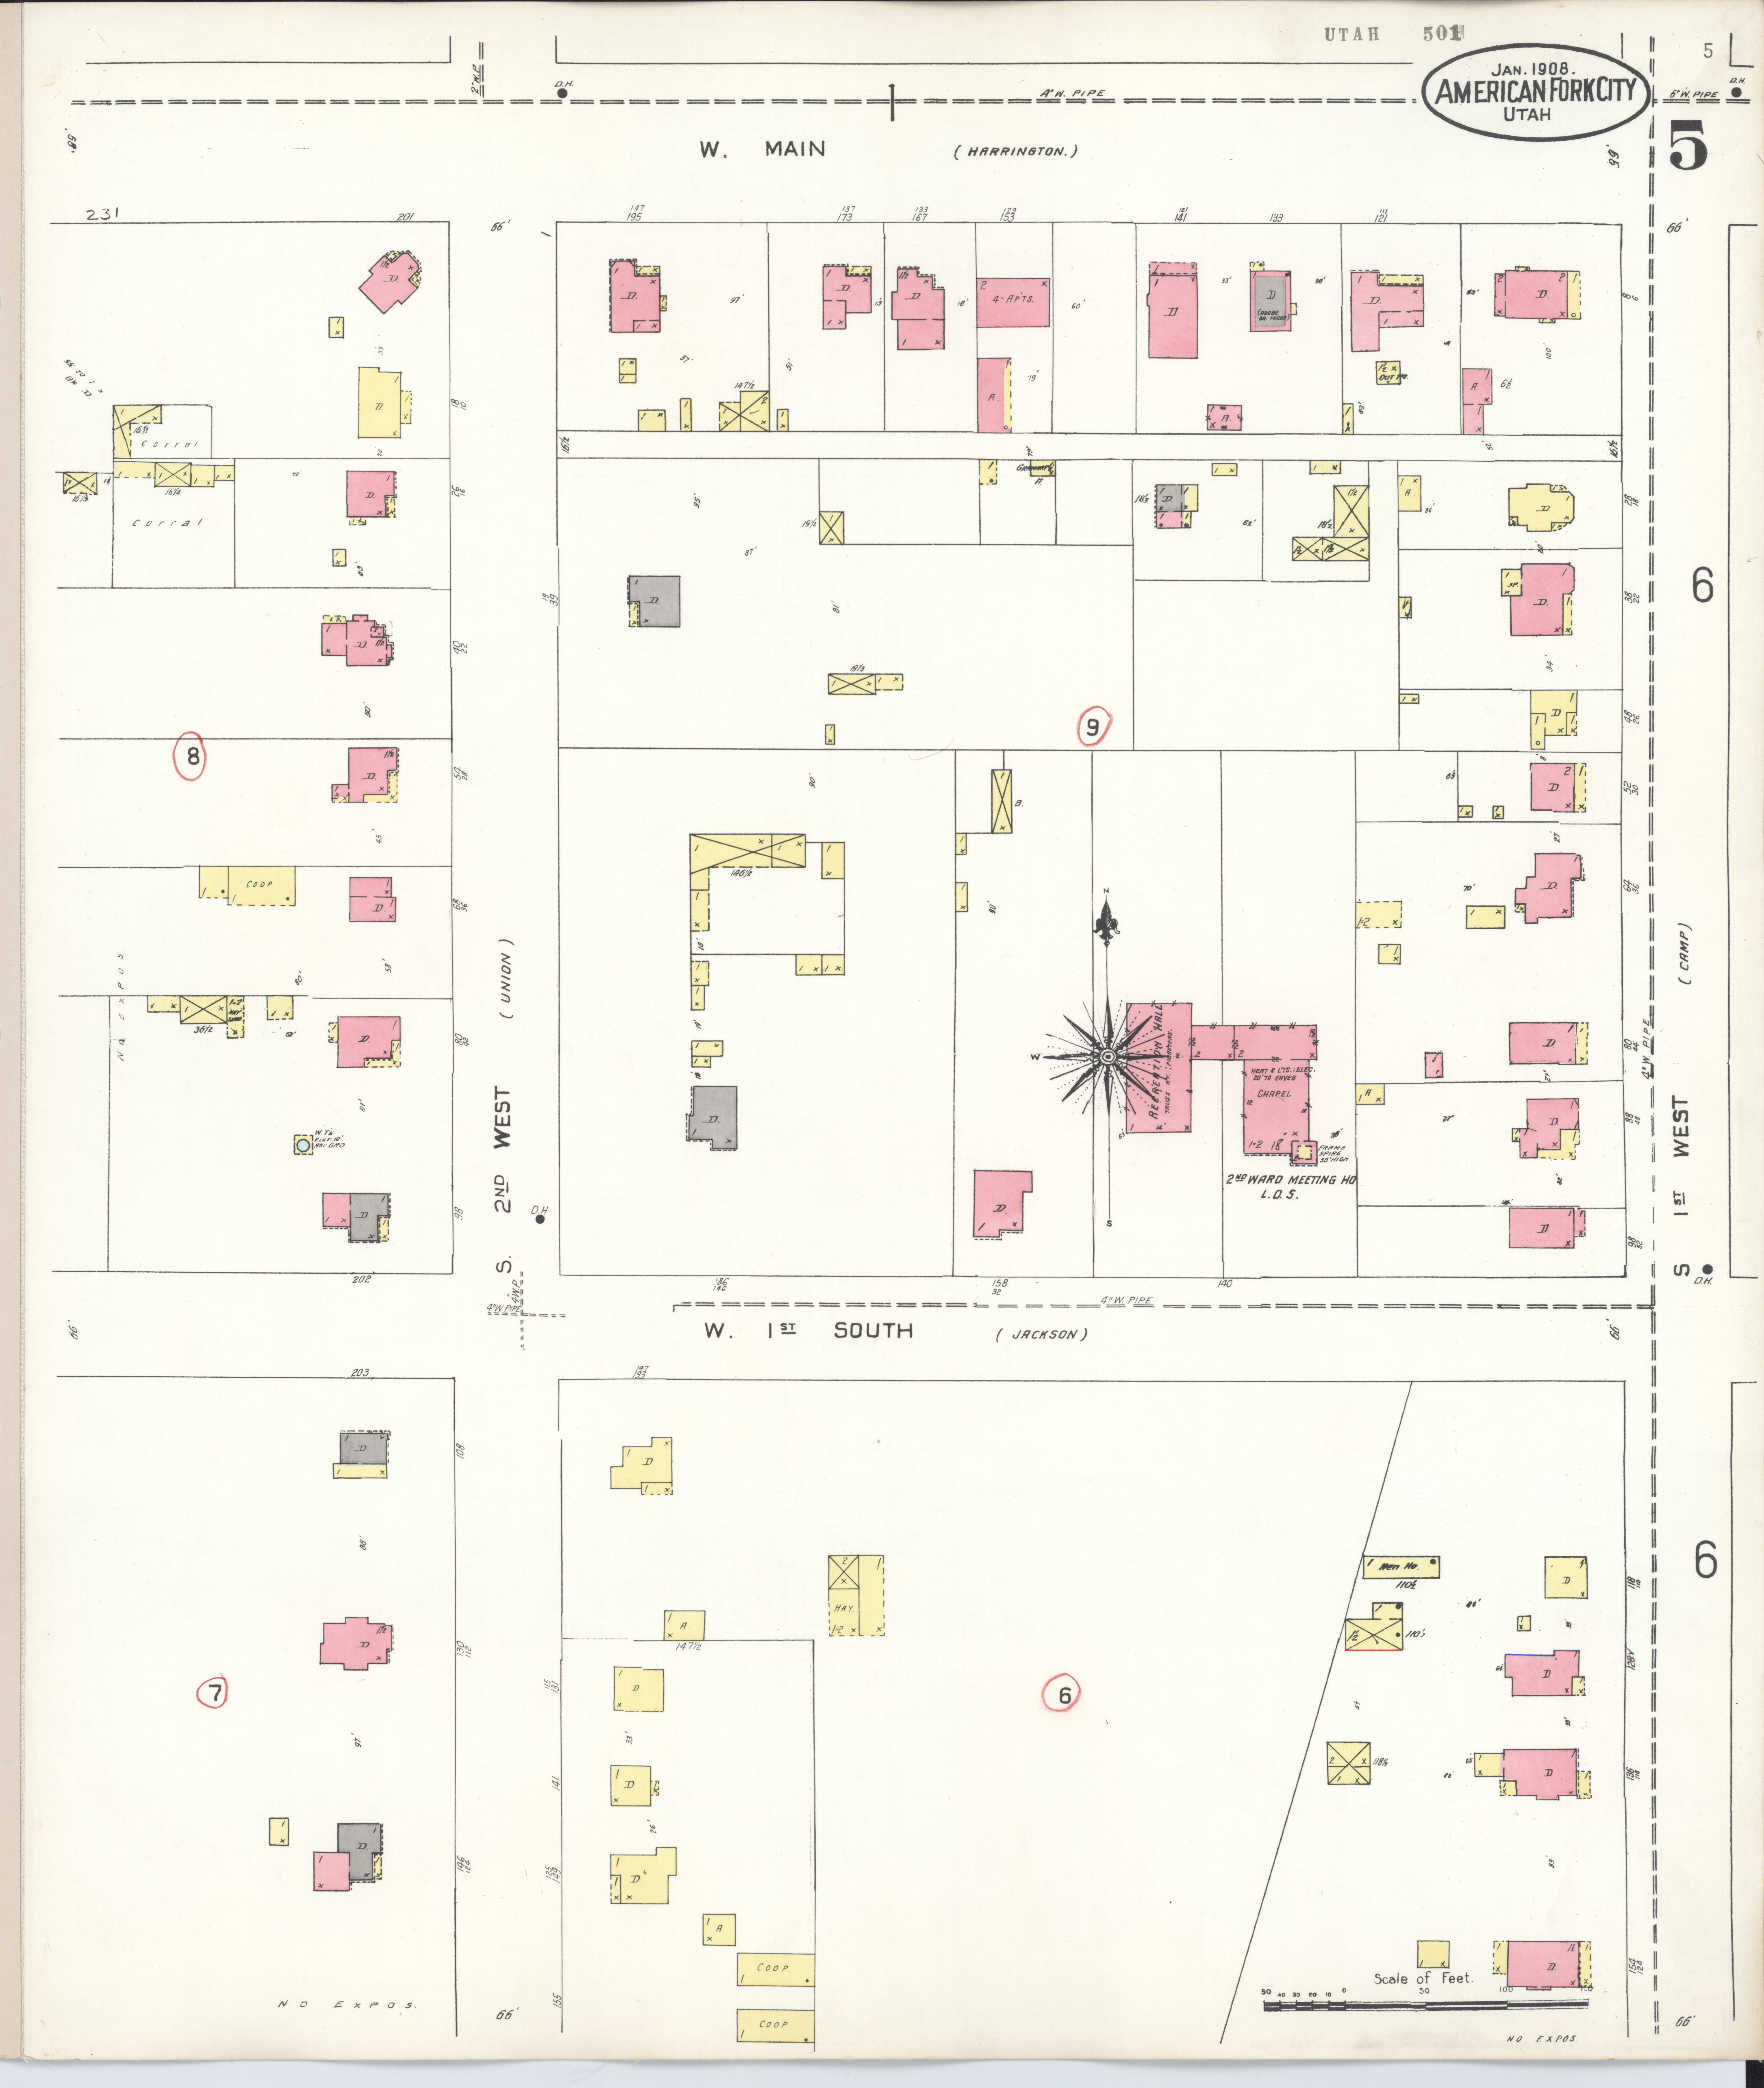 File:Sanborn Fire Insurance Map from American Fork, Utah ... on map of hill air force base utah, map of wallsburg utah, map of dugway utah, map of henefer utah, map of mountain green utah, map of genola utah, map of vineyard utah, map of timber lakes utah, map of new harmony utah, map of sterling utah, map of lapoint utah, map of la verkin utah, map of summit park utah, map of beryl utah, map of great salt lake utah, map of elk ridge utah, map of rush valley utah, map of united states utah, map of south weber utah, map of thanksgiving point utah,